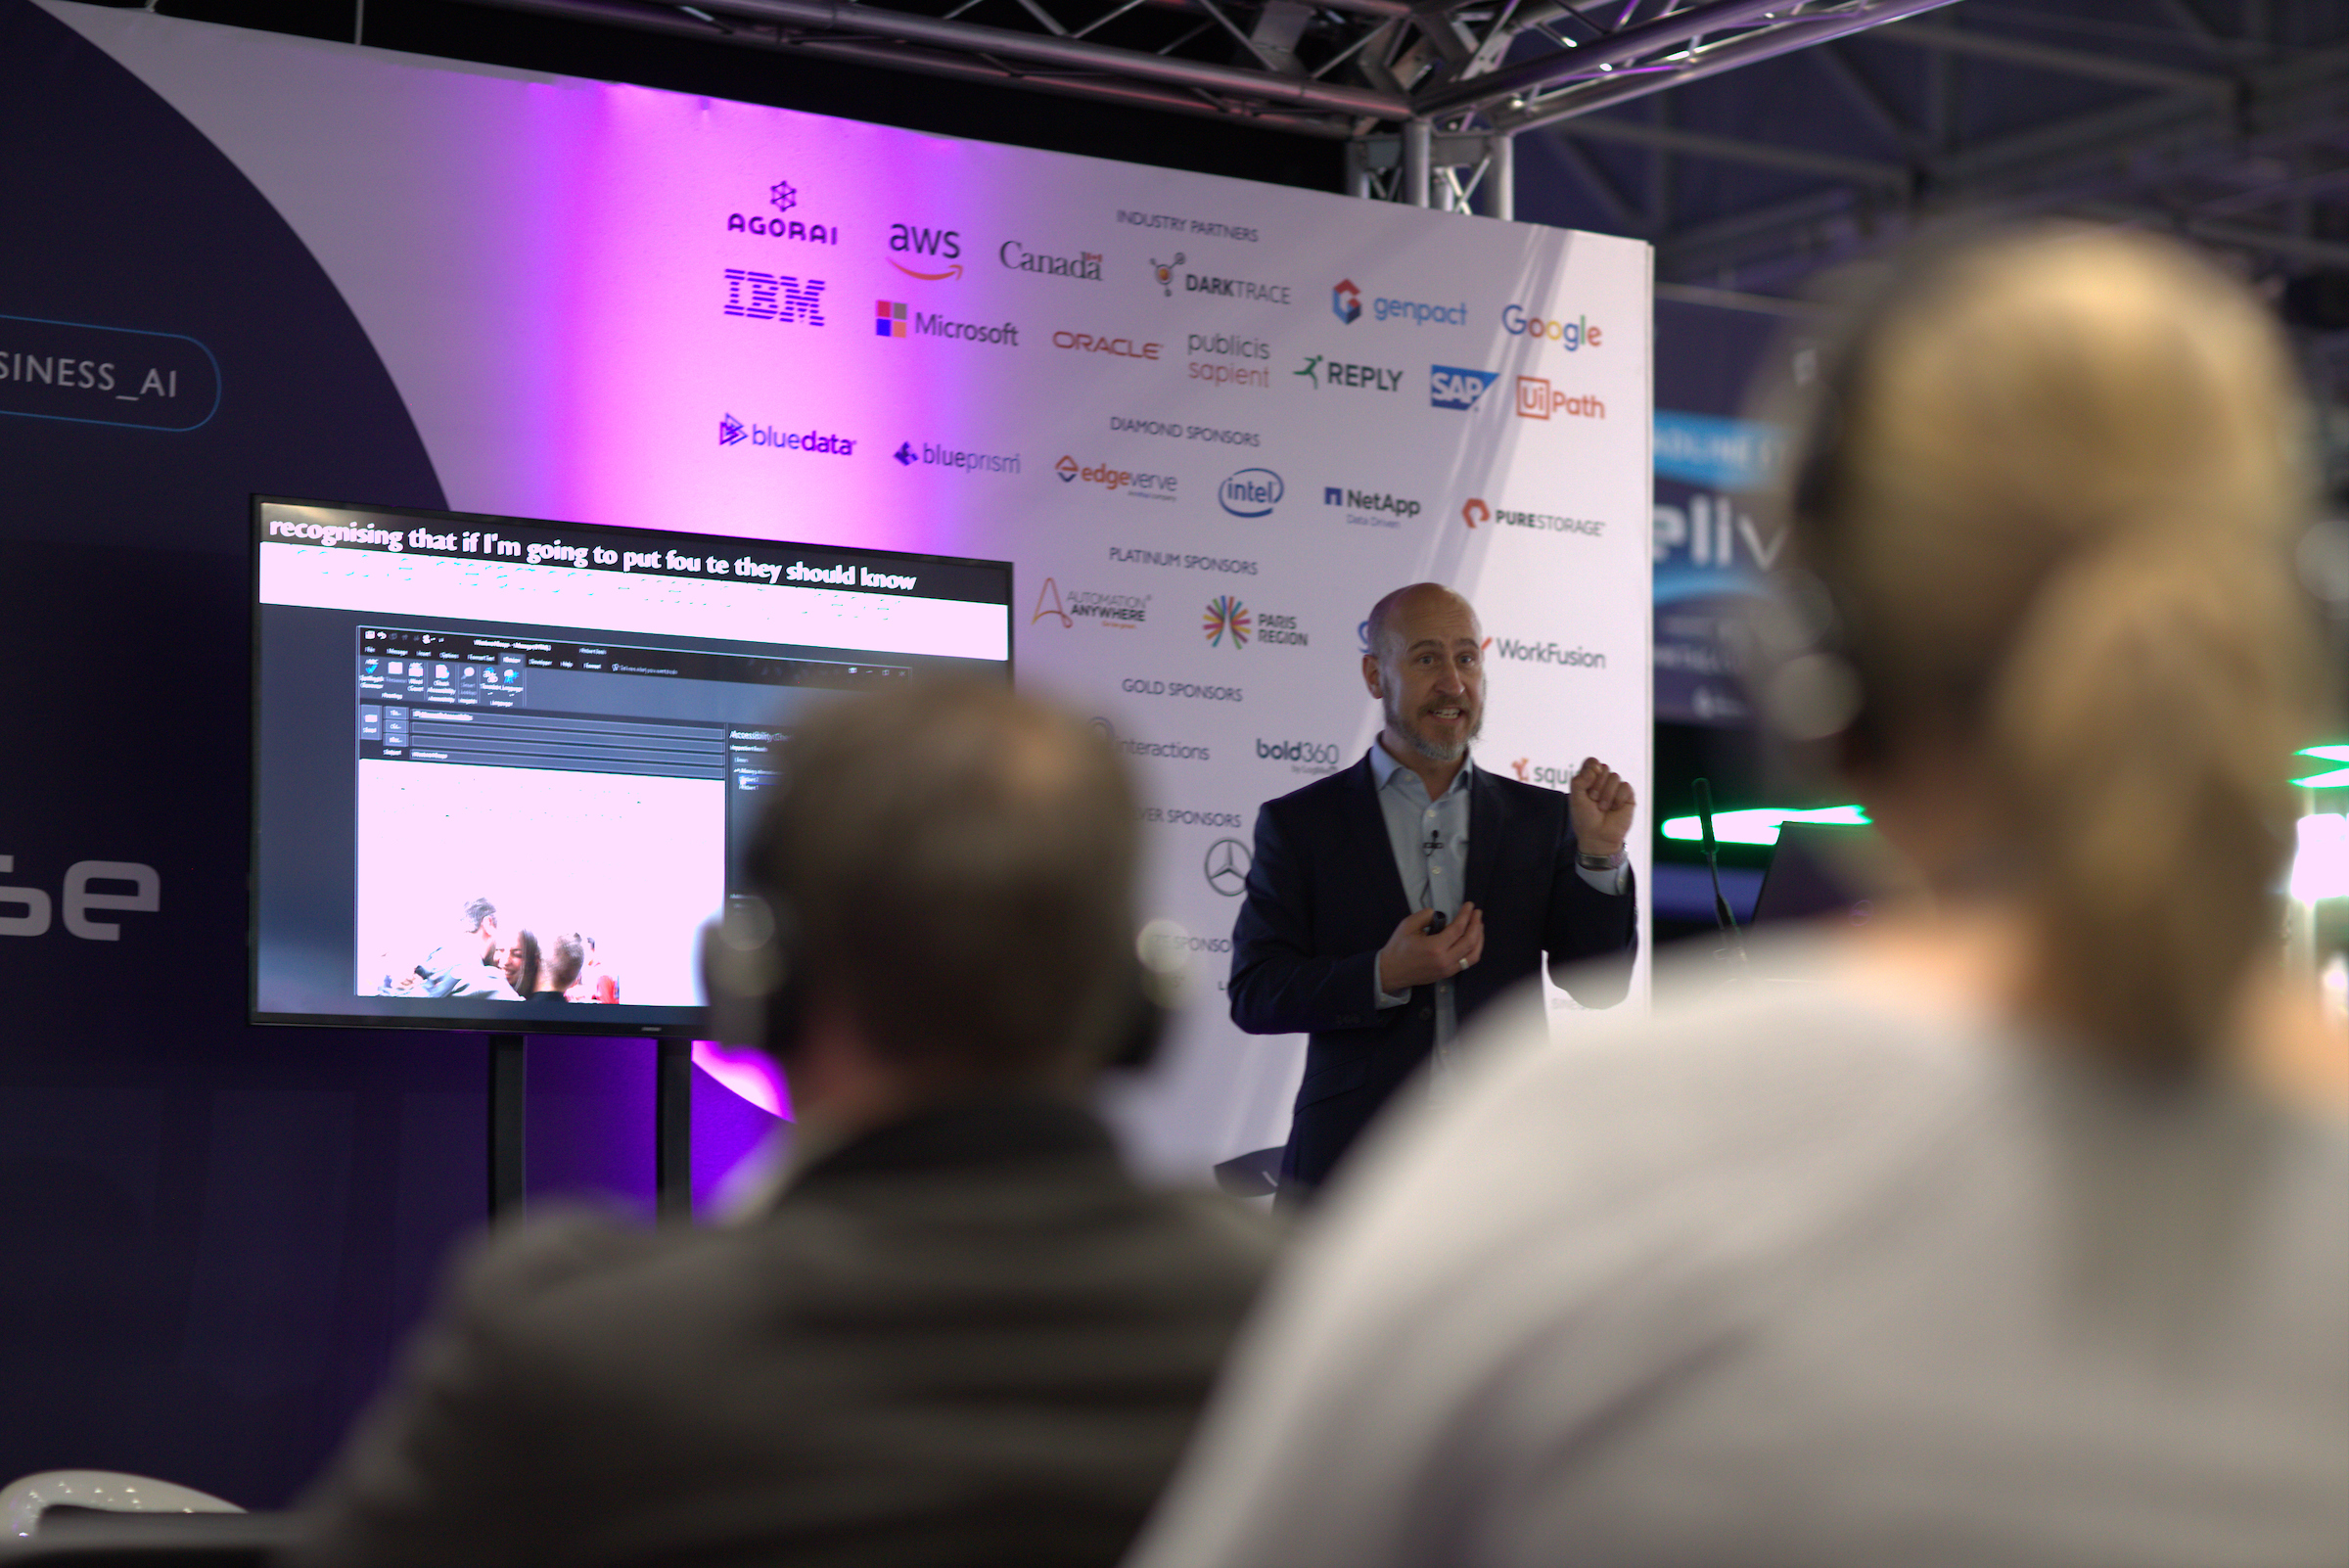 Hector Minto talks about accessibility in the ExCeL during London Tech Week